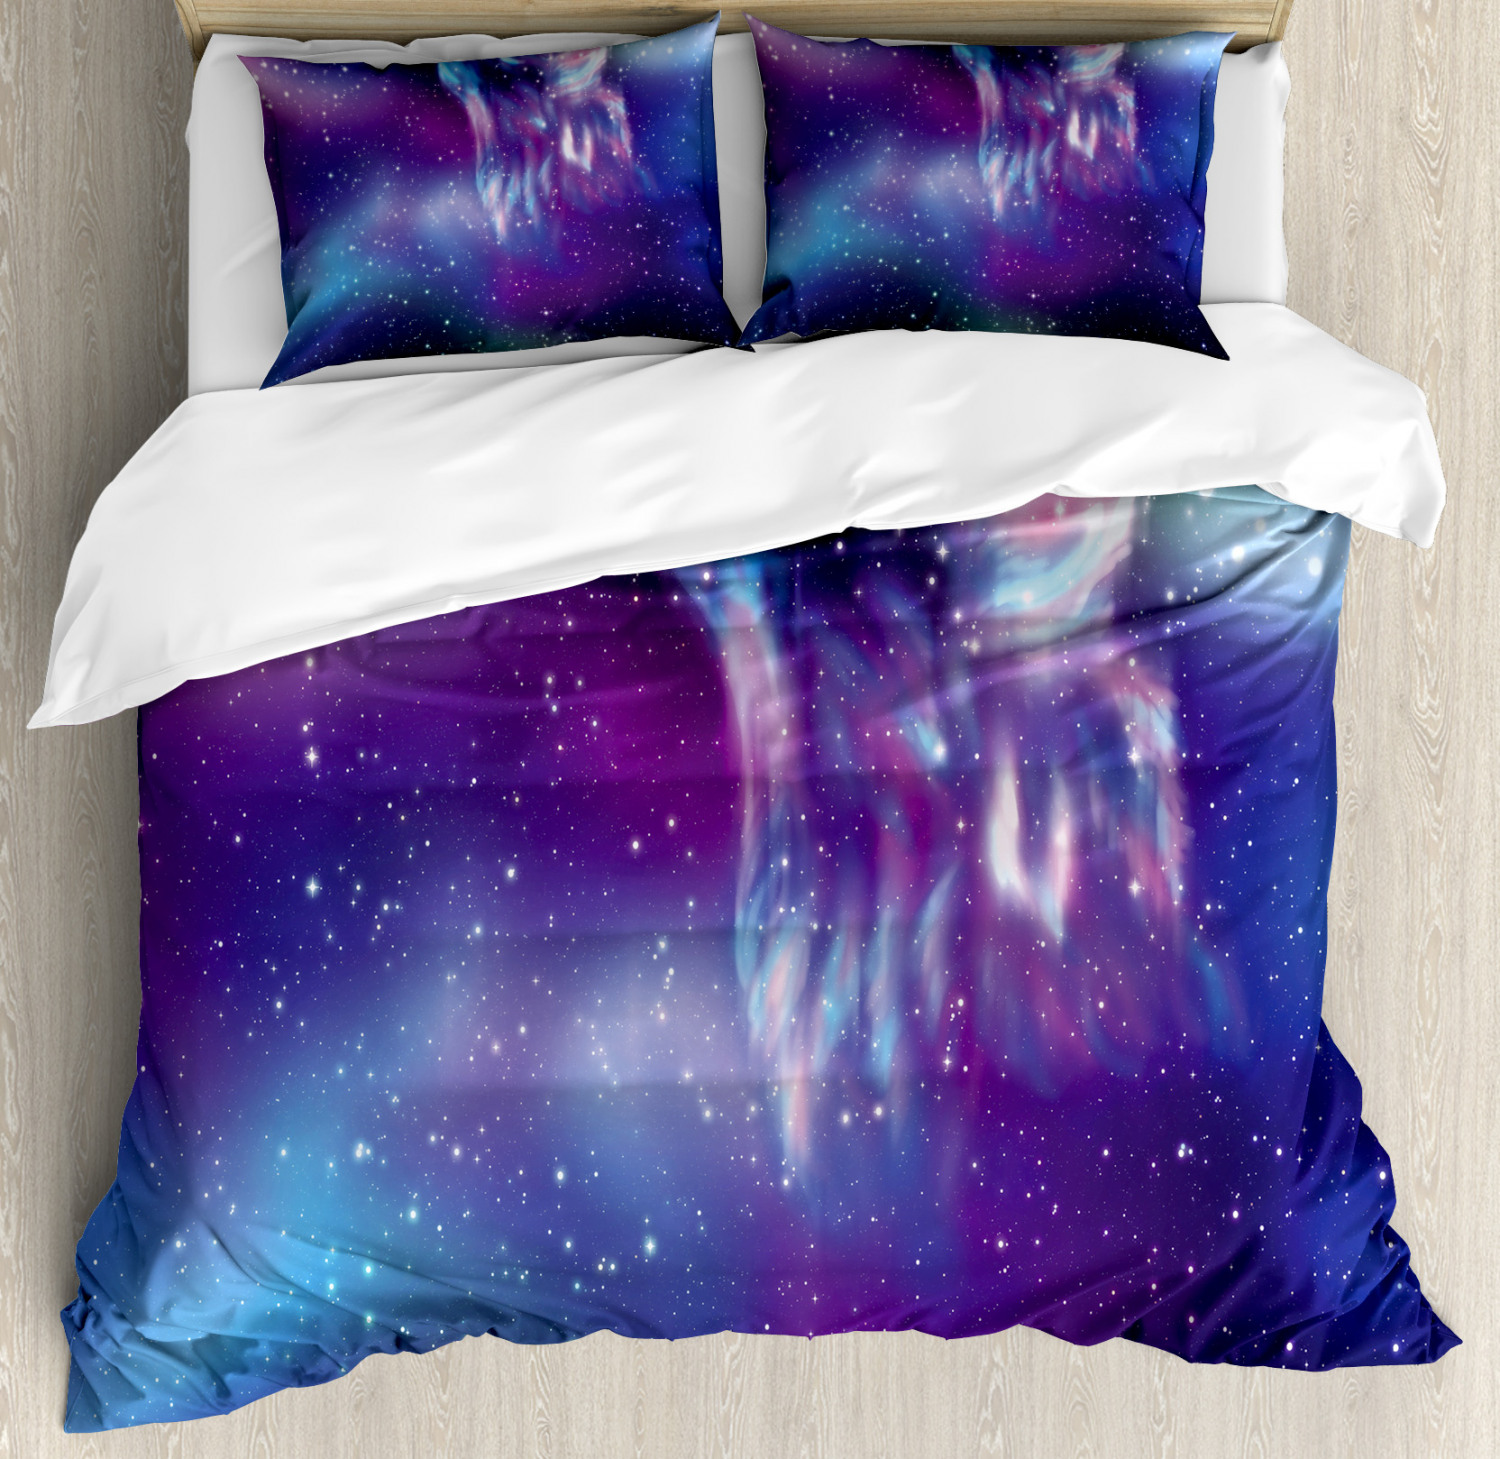 Nature Duvet Cover Set with Pillow Shams Northern Aurora Borealis Print